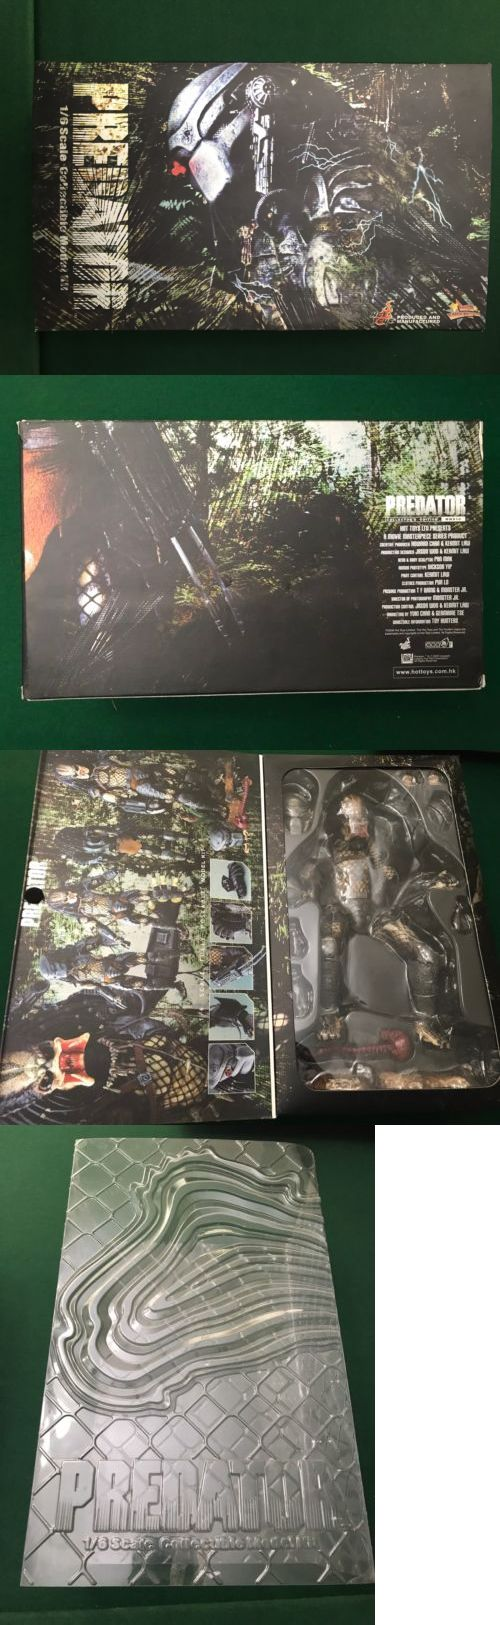 TV Movie and Video Games 75708: Hot Toys Mms 90 Original Predator 14 Inch Action Figure New Arnold -> BUY IT NOW ONLY: $199 on eBay!